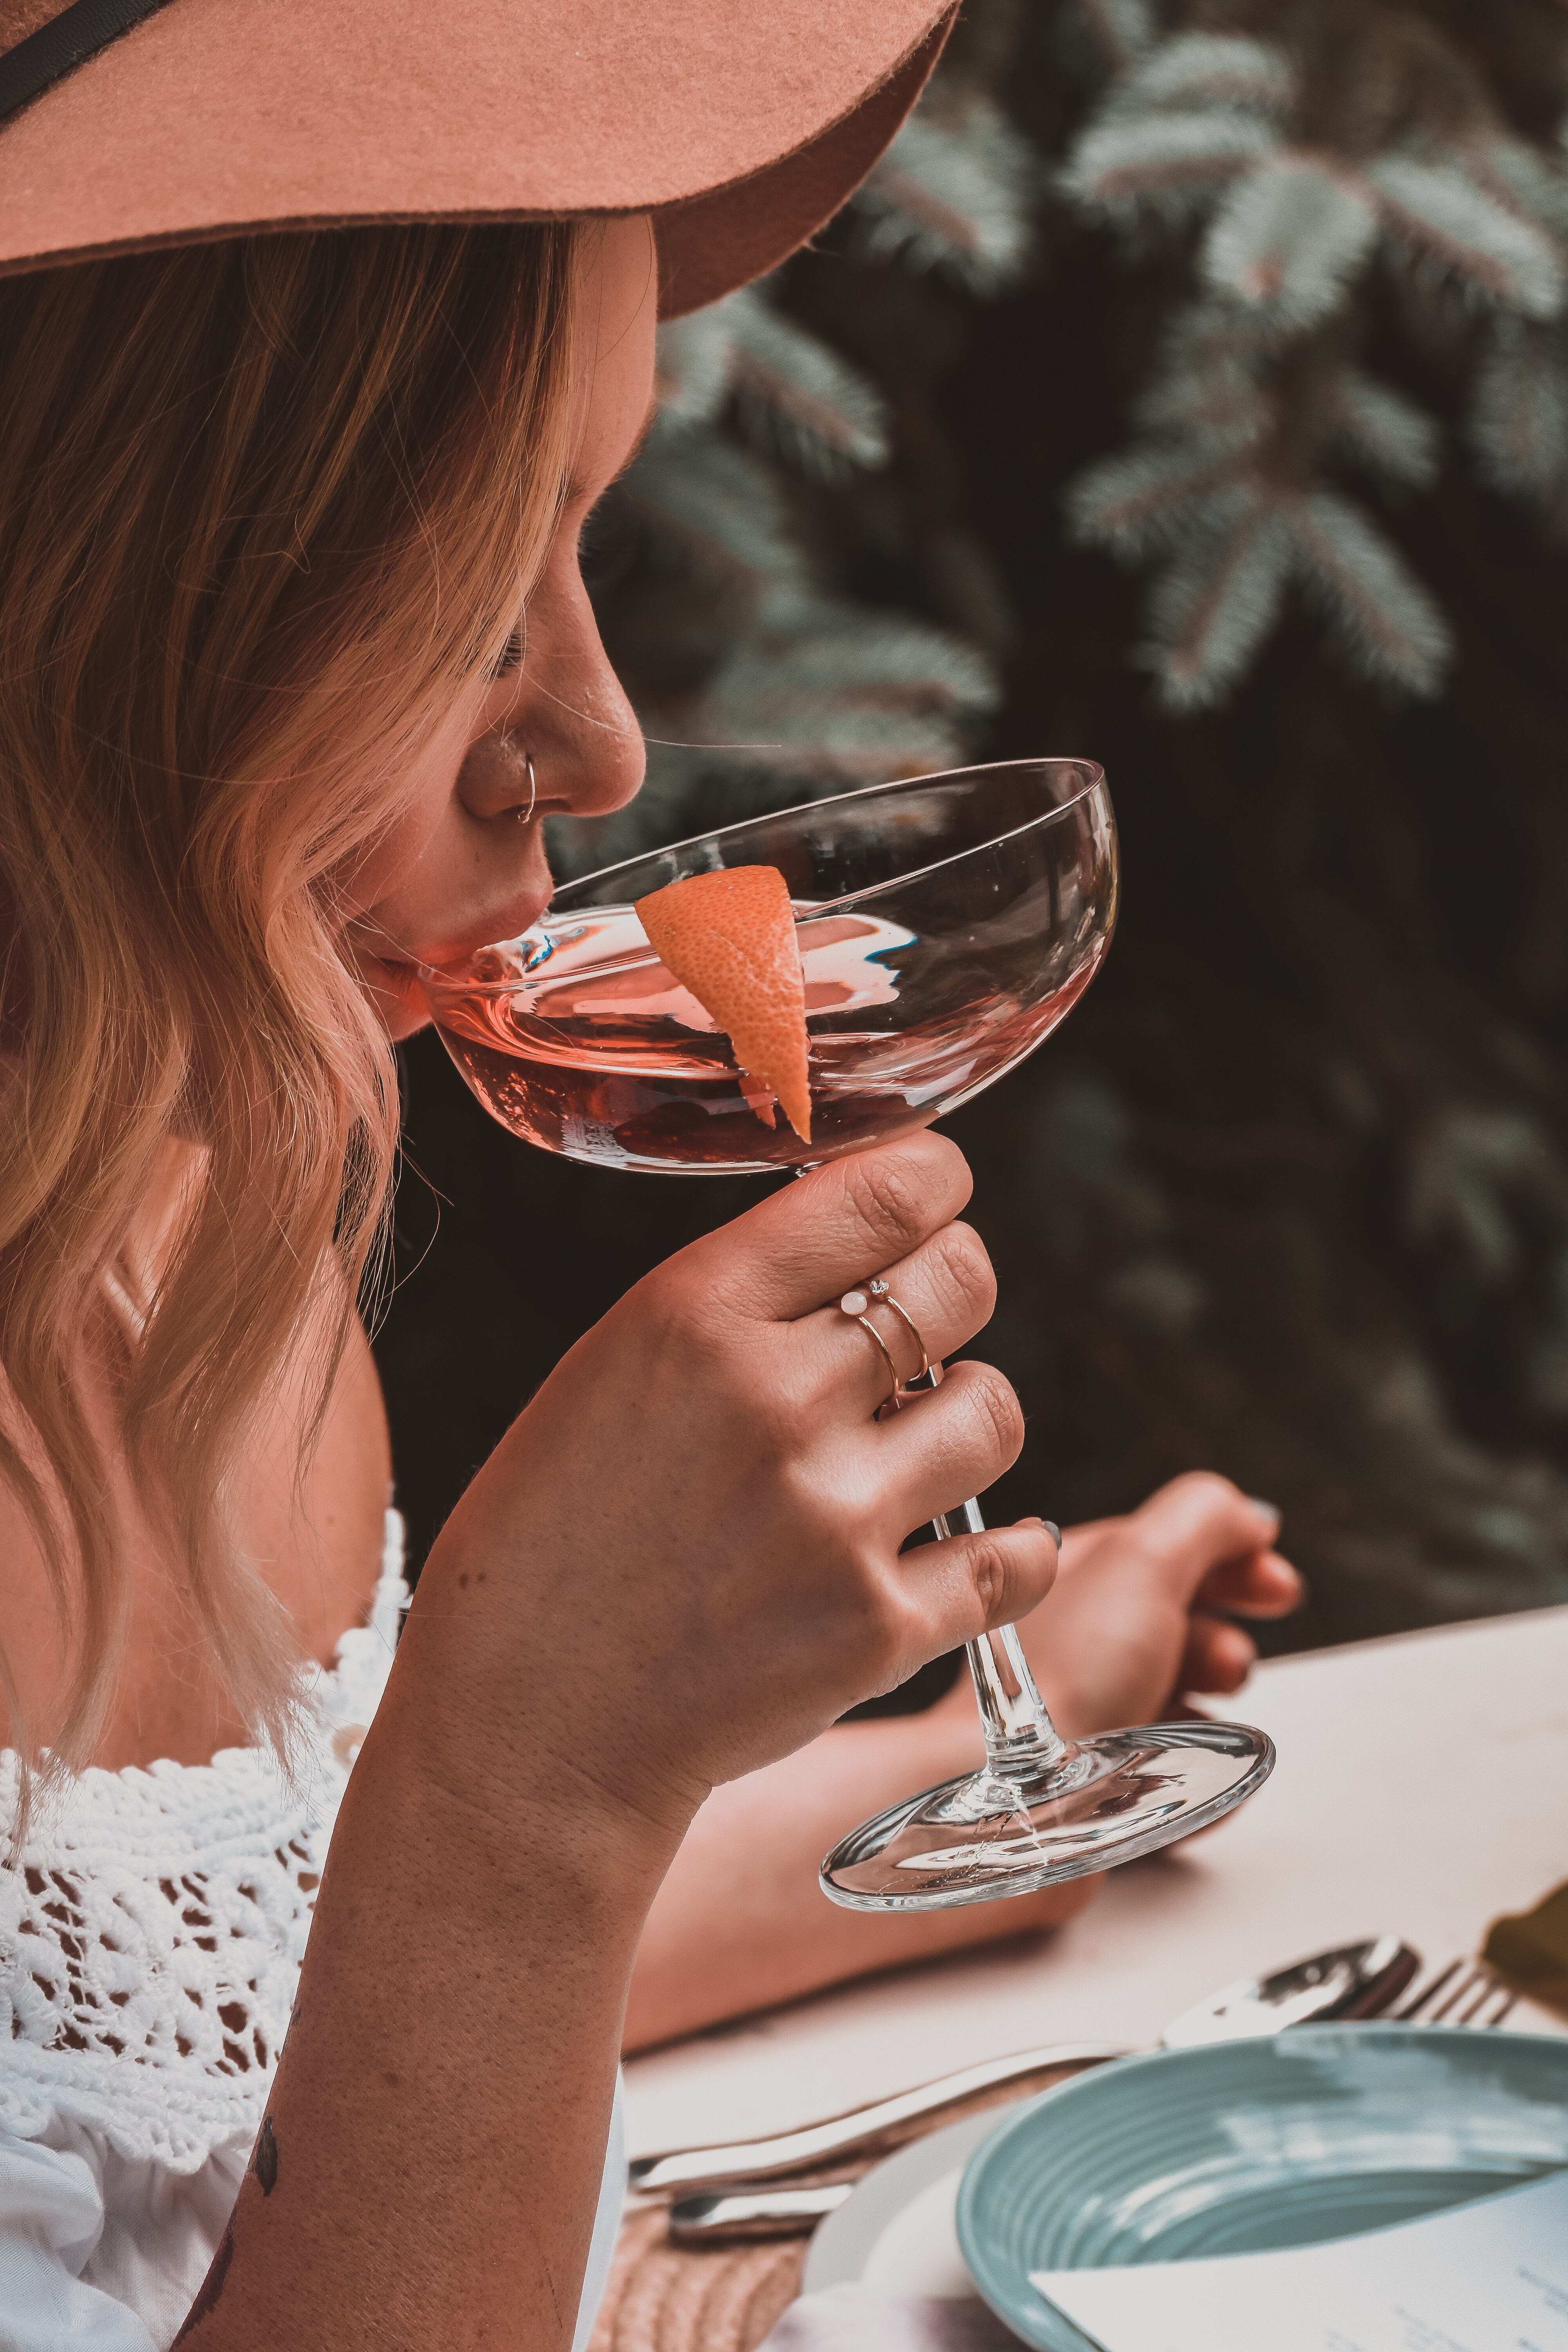 Female Alcohol Use has Increased Sharply Over the Years